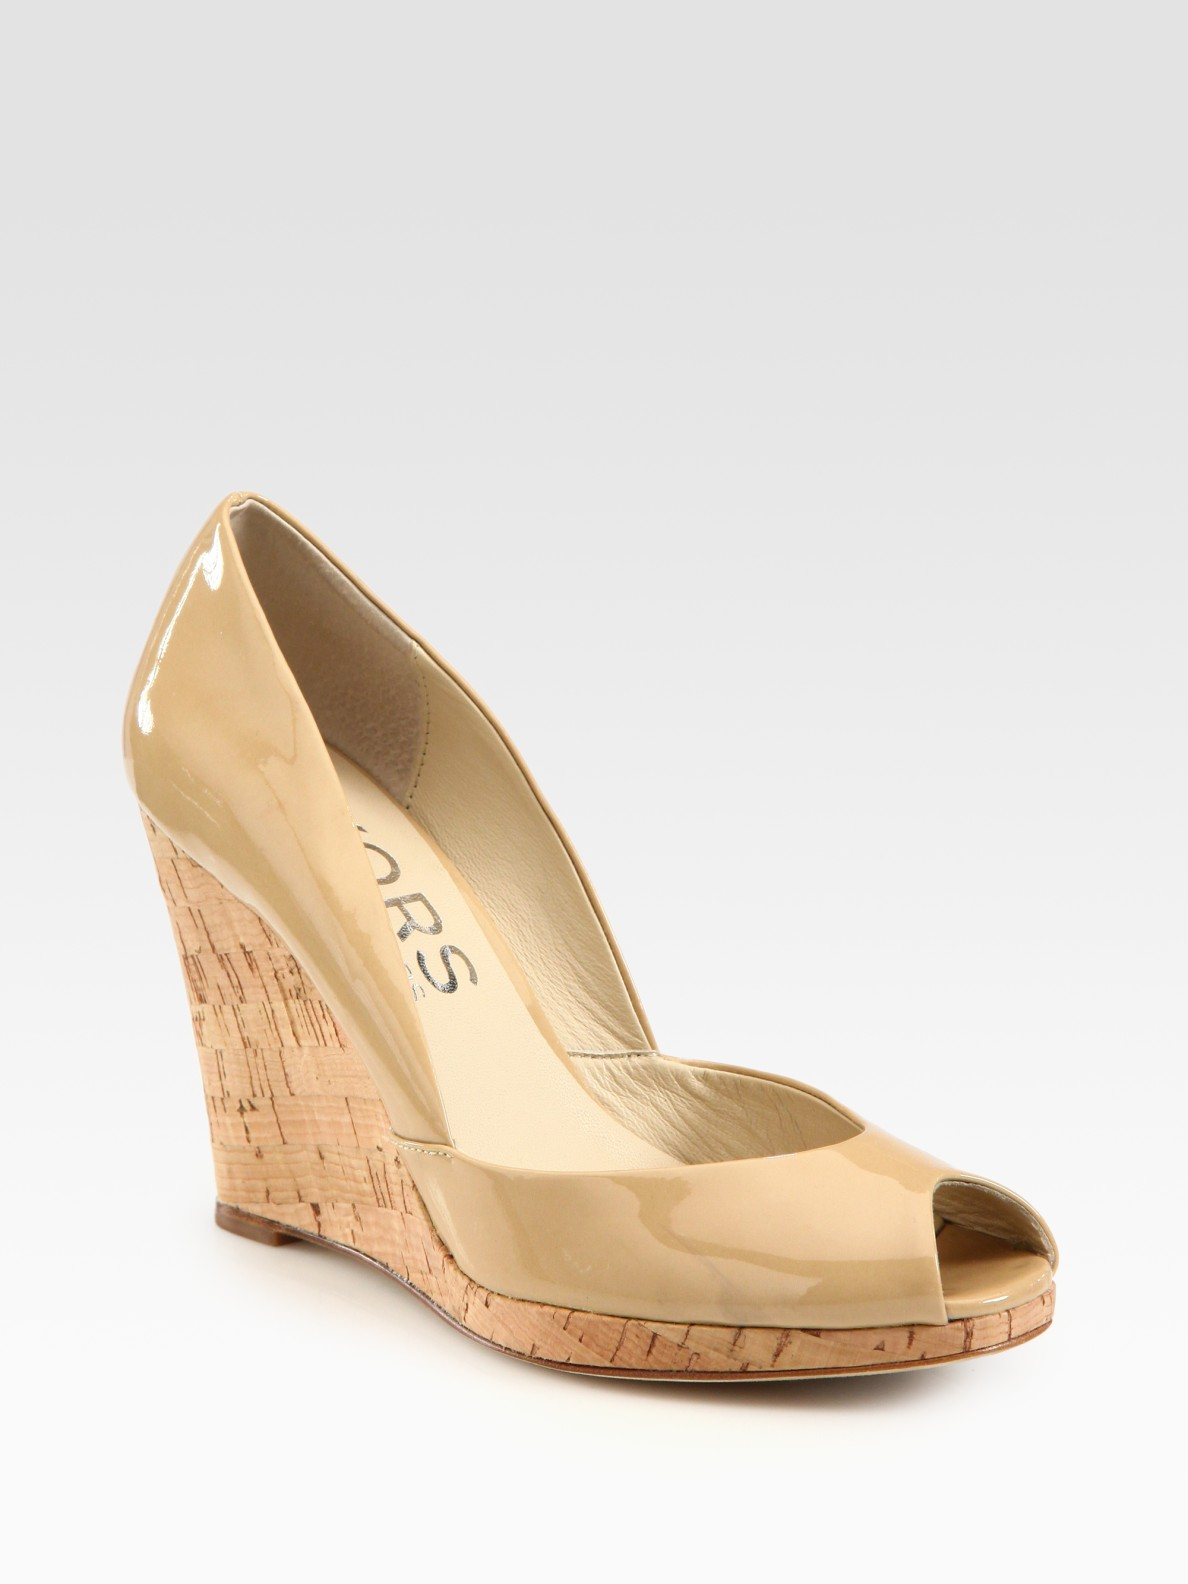 e1d7d036970 Lyst - Kors by Michael Kors Vail Patent Leather Wedge Pumps in Natural